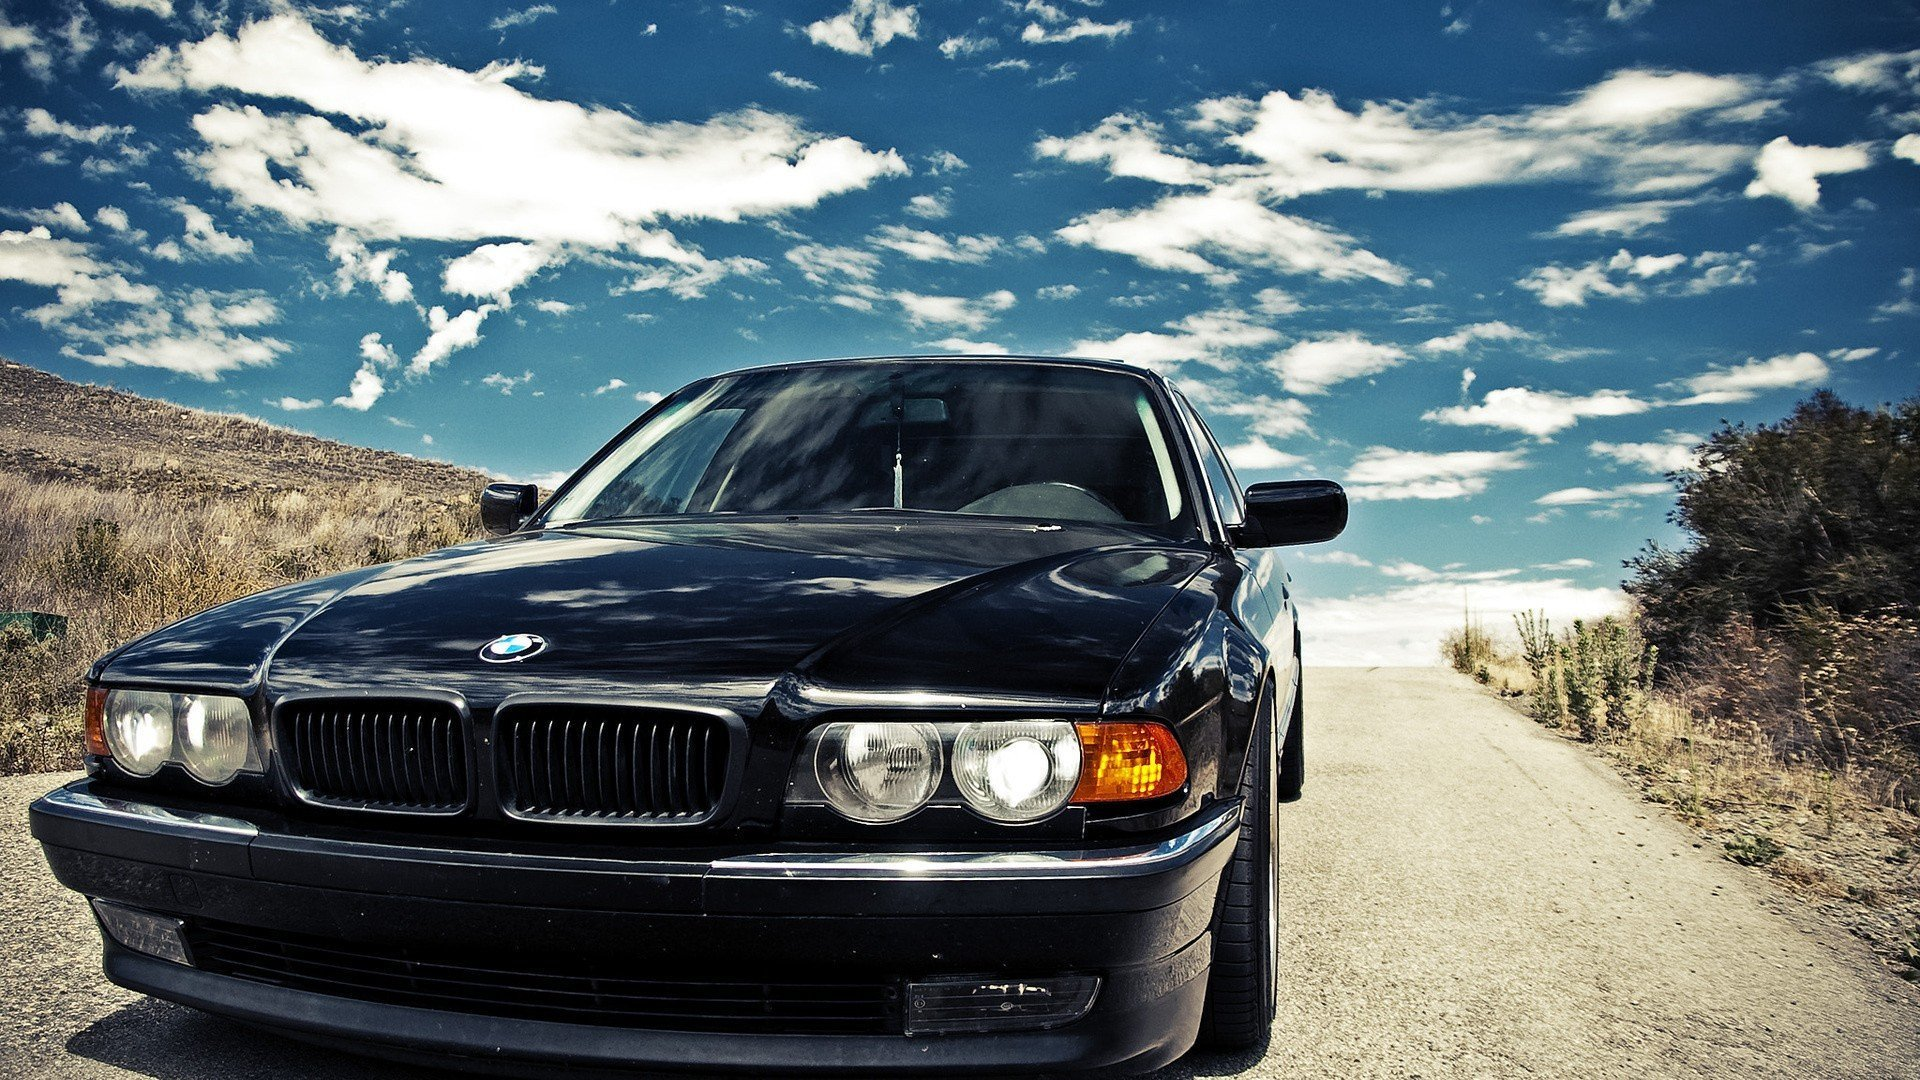 Latest Bmw Black Cars Bmw E38 Wallpaper 1920X1080 253971 Free Download